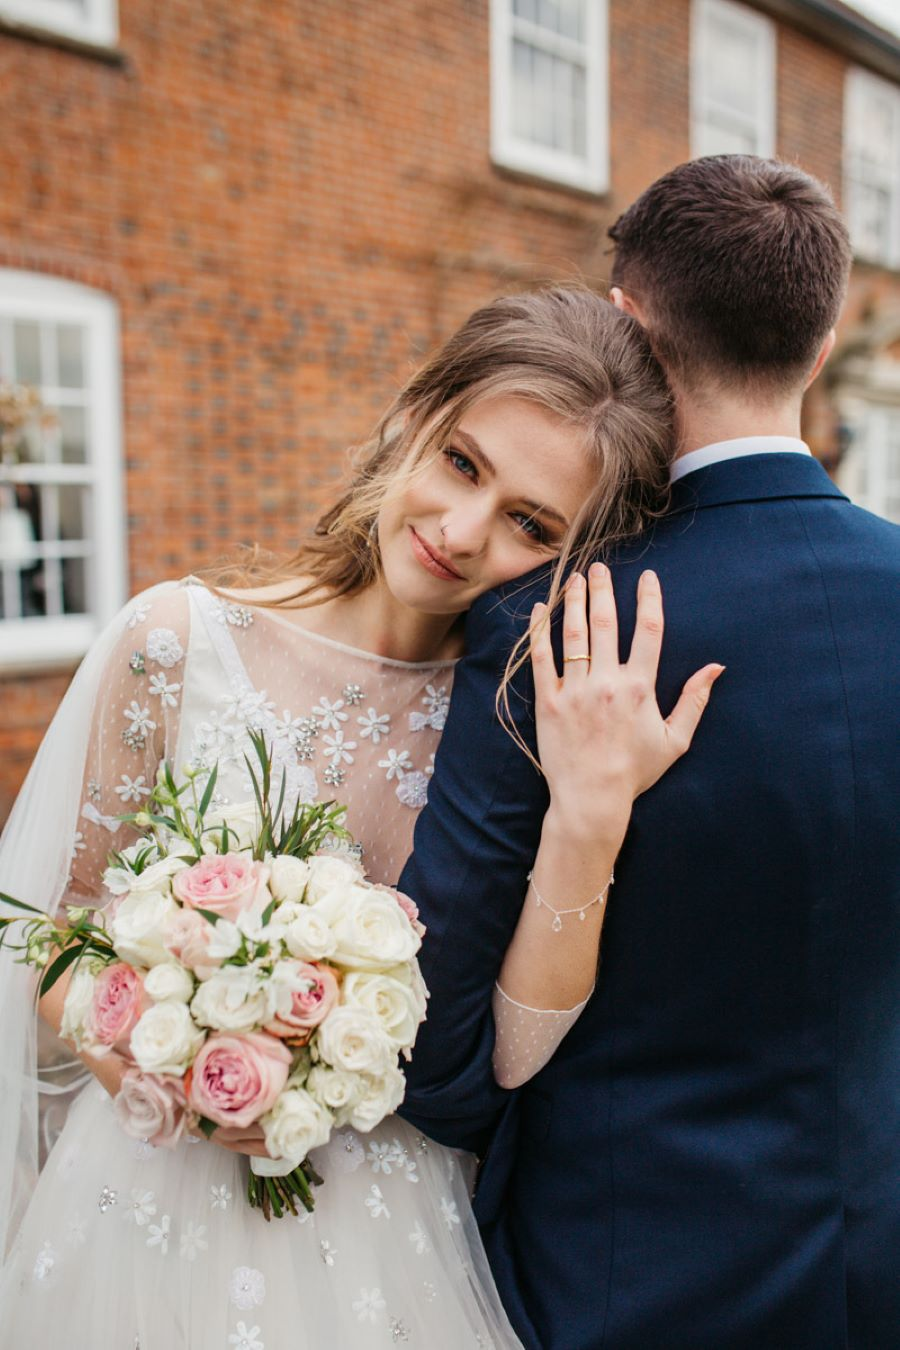 Light and romance with natural blush tones - wedding ideas from Downham Hall. Photographer credit Magical Moments Photography (35)